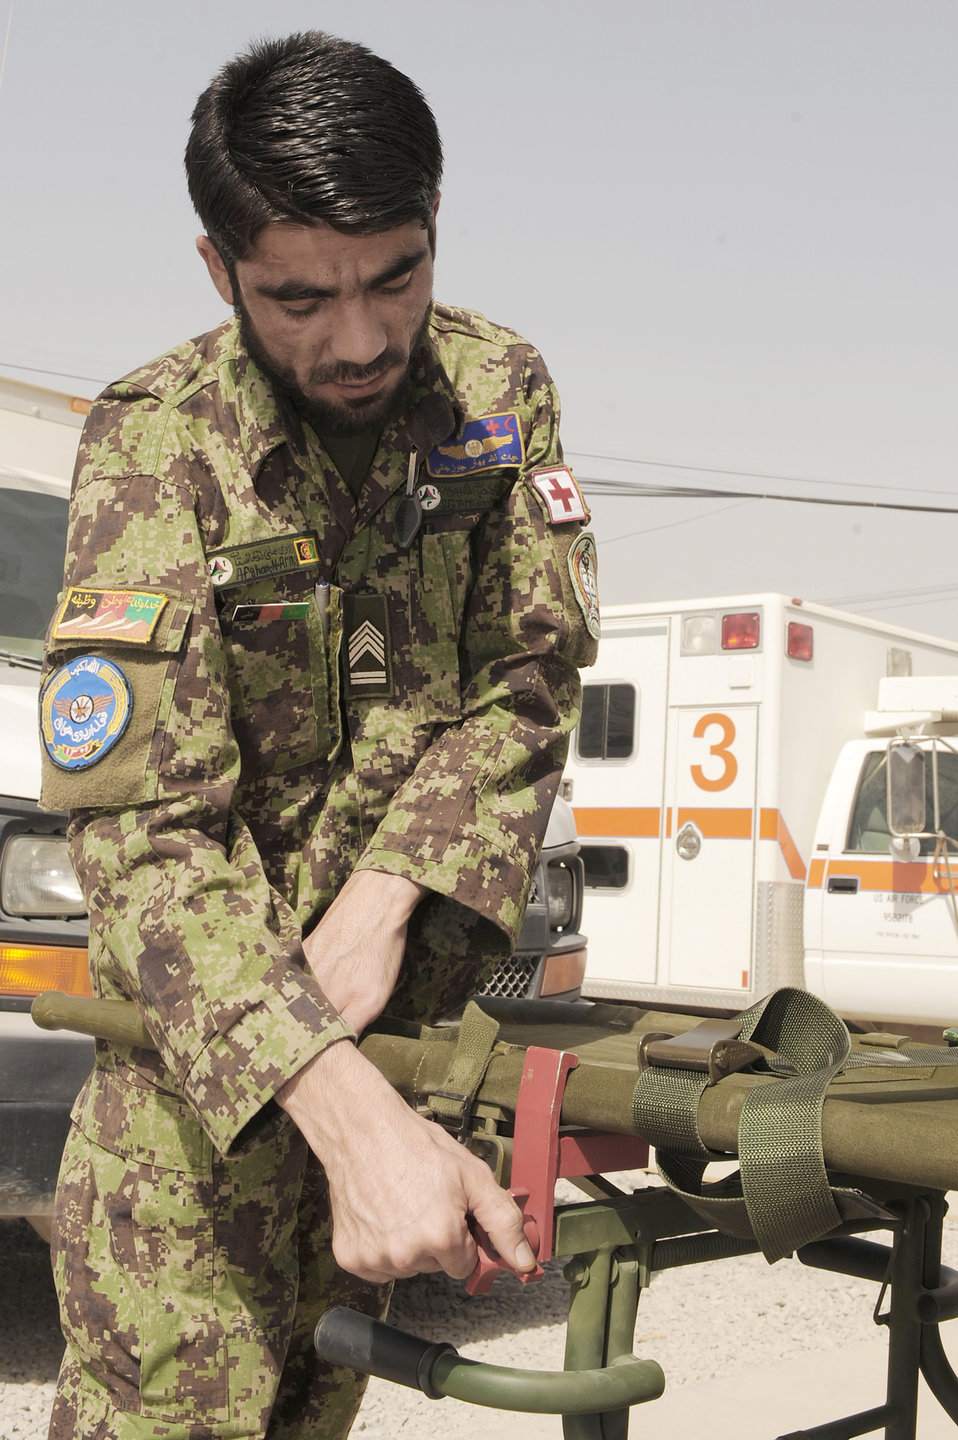 Medics showcase patient care concepts to Afghan airmen